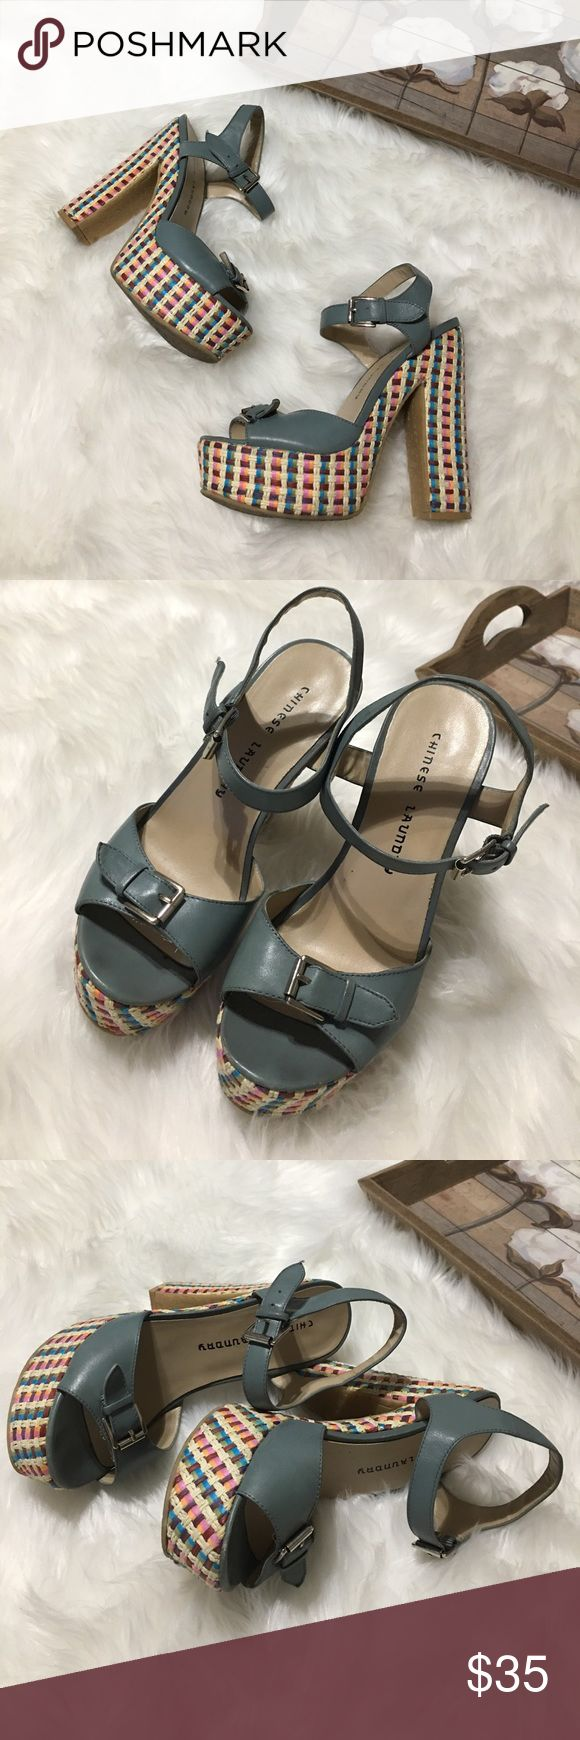 Chinese Laundry Blue Woven Platform Heels Sz 7.5 Super chic and stylish Chinese Laundry Woven detail platform heels size 7.5 in excellent gently worn condition. Perfect for all occasions. Stunning on! Chinese Laundry Shoes Platforms